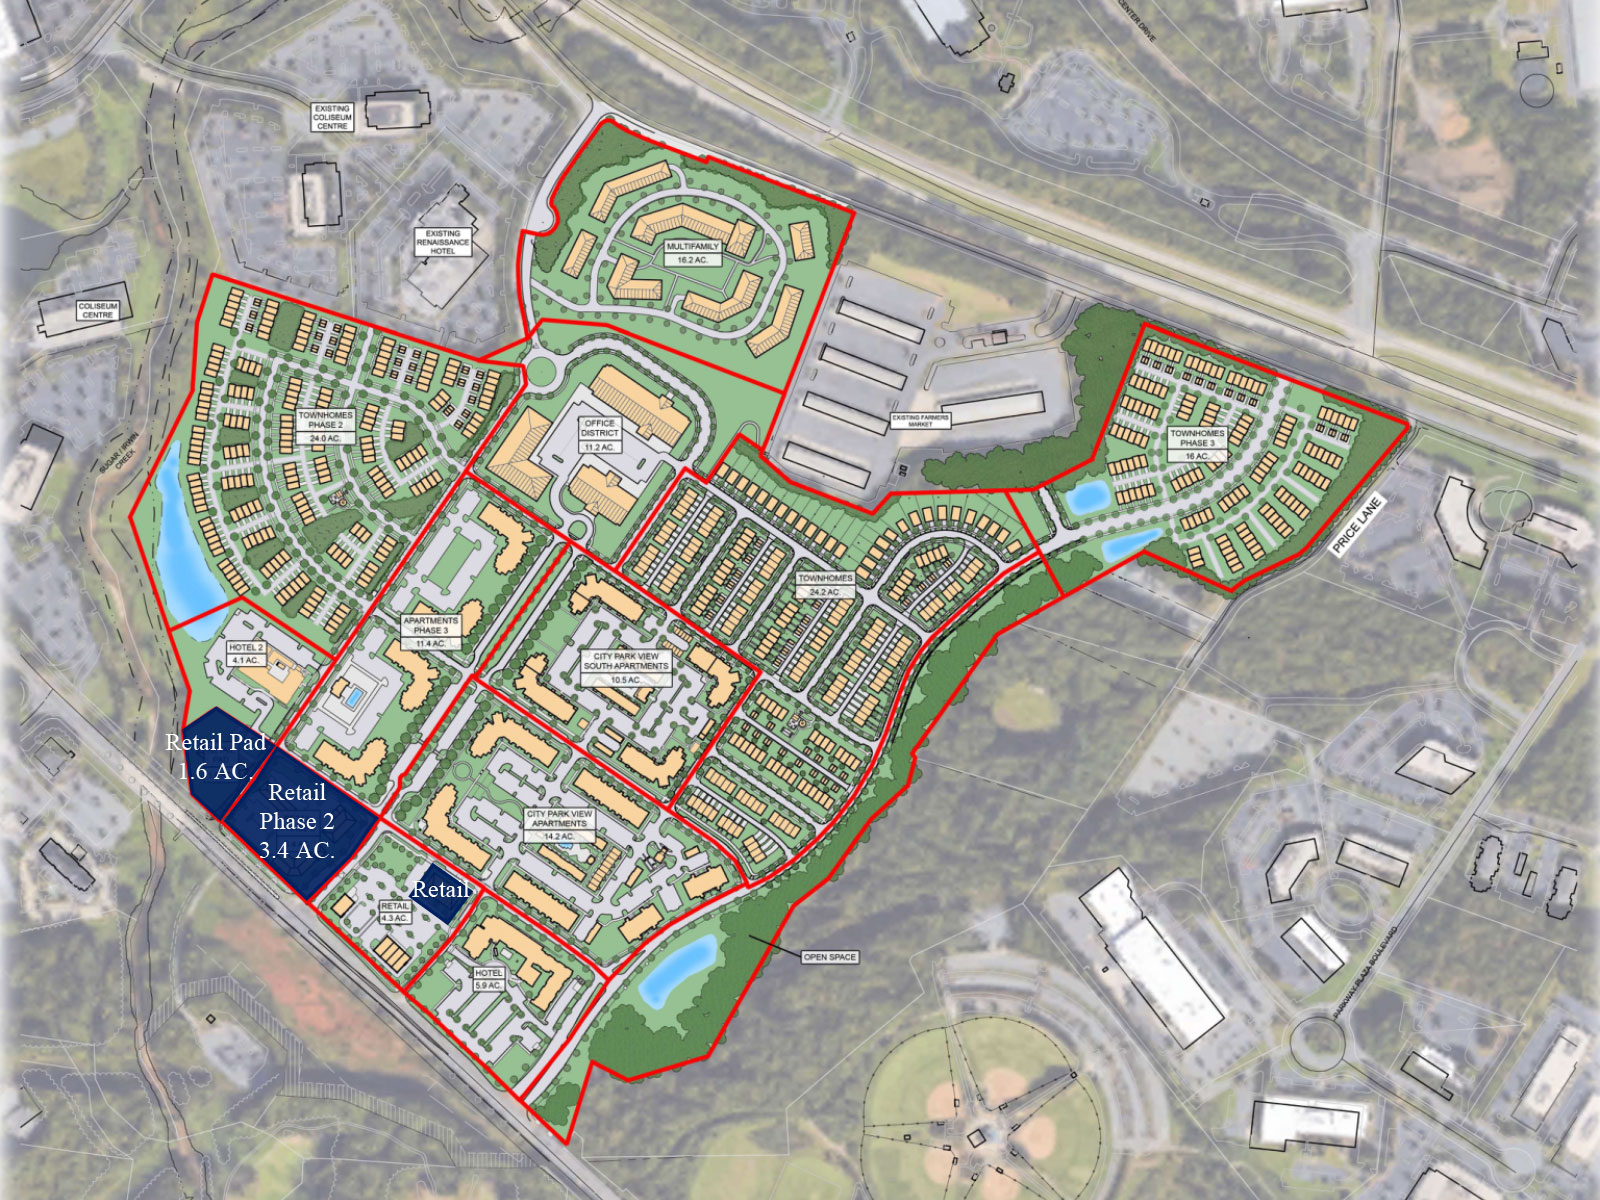 City Park Retail Phase 2 Site Plan